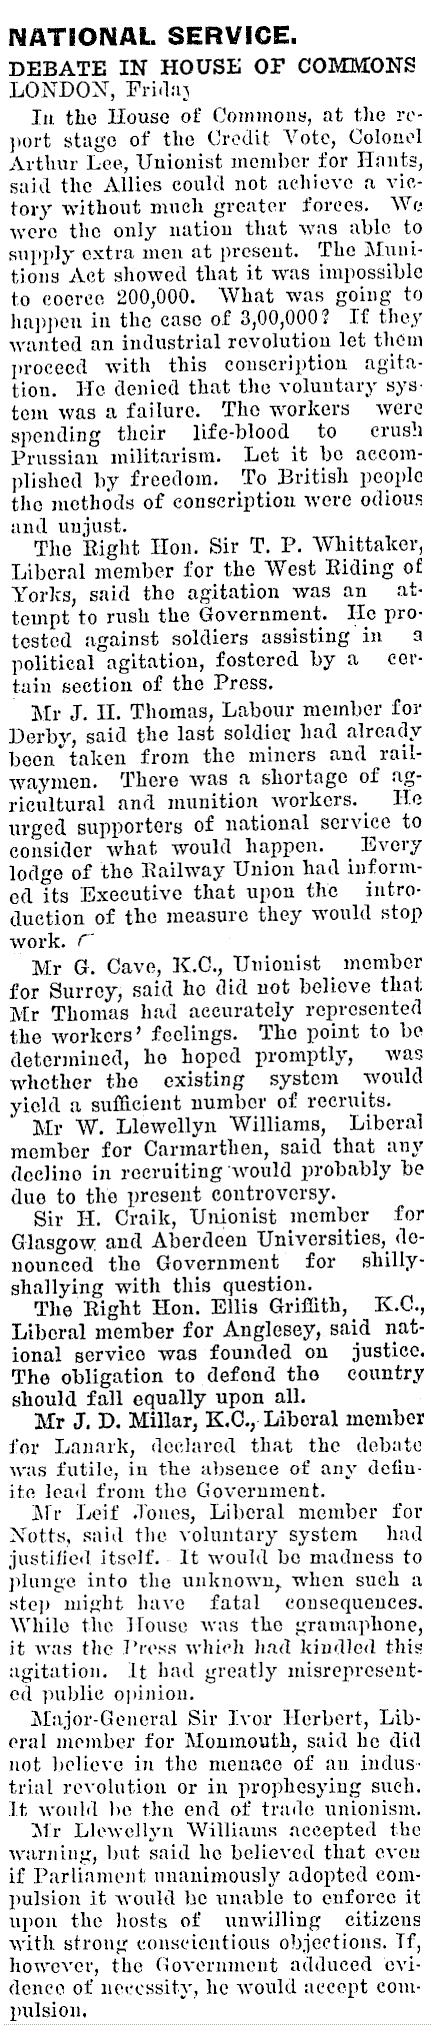 A wire service report on the day's debate preserved by the National Library of New Zealand